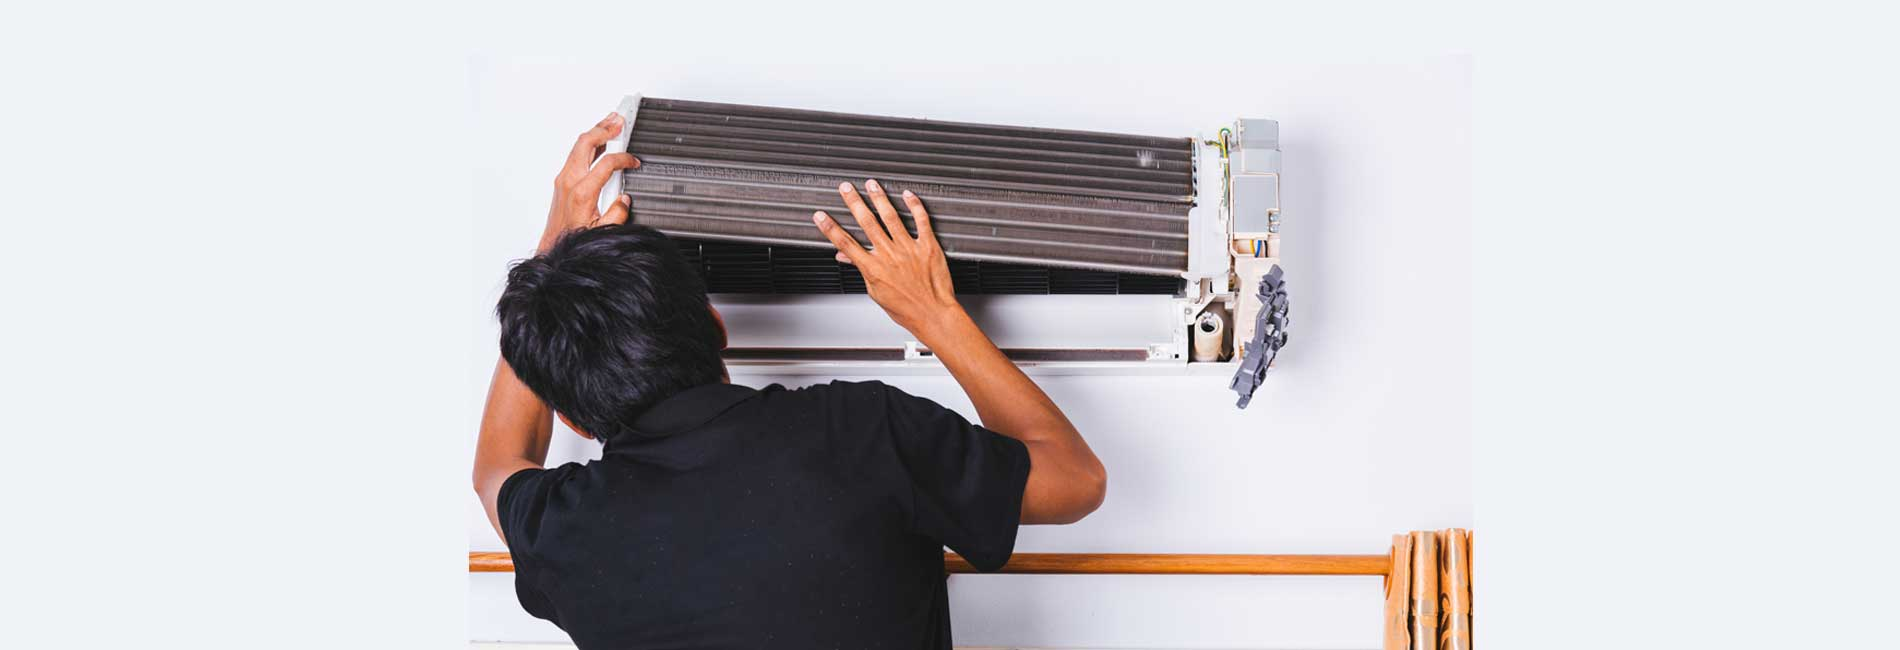 Panasonic AC Installation in Kovilancheri